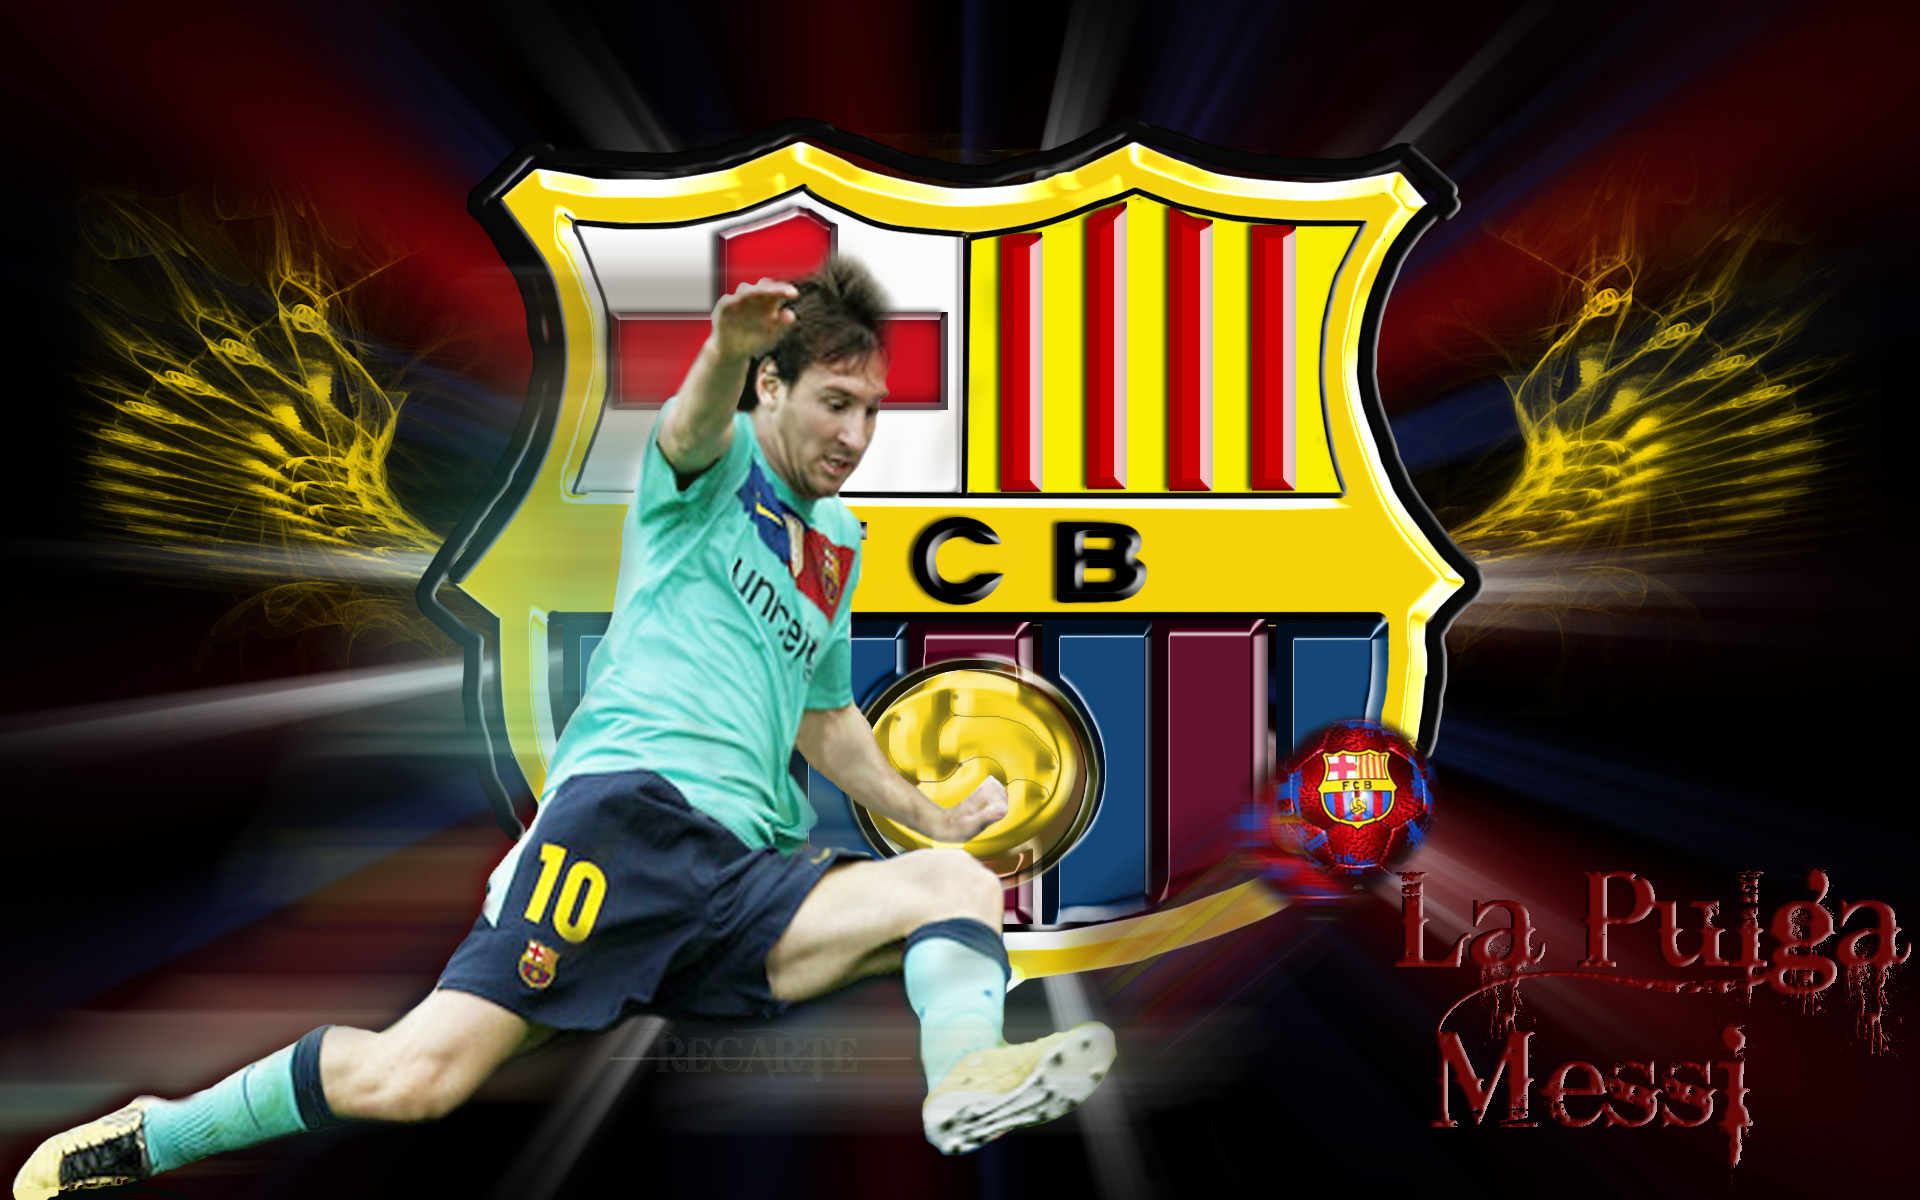 Messi Wallpaper fcb kick